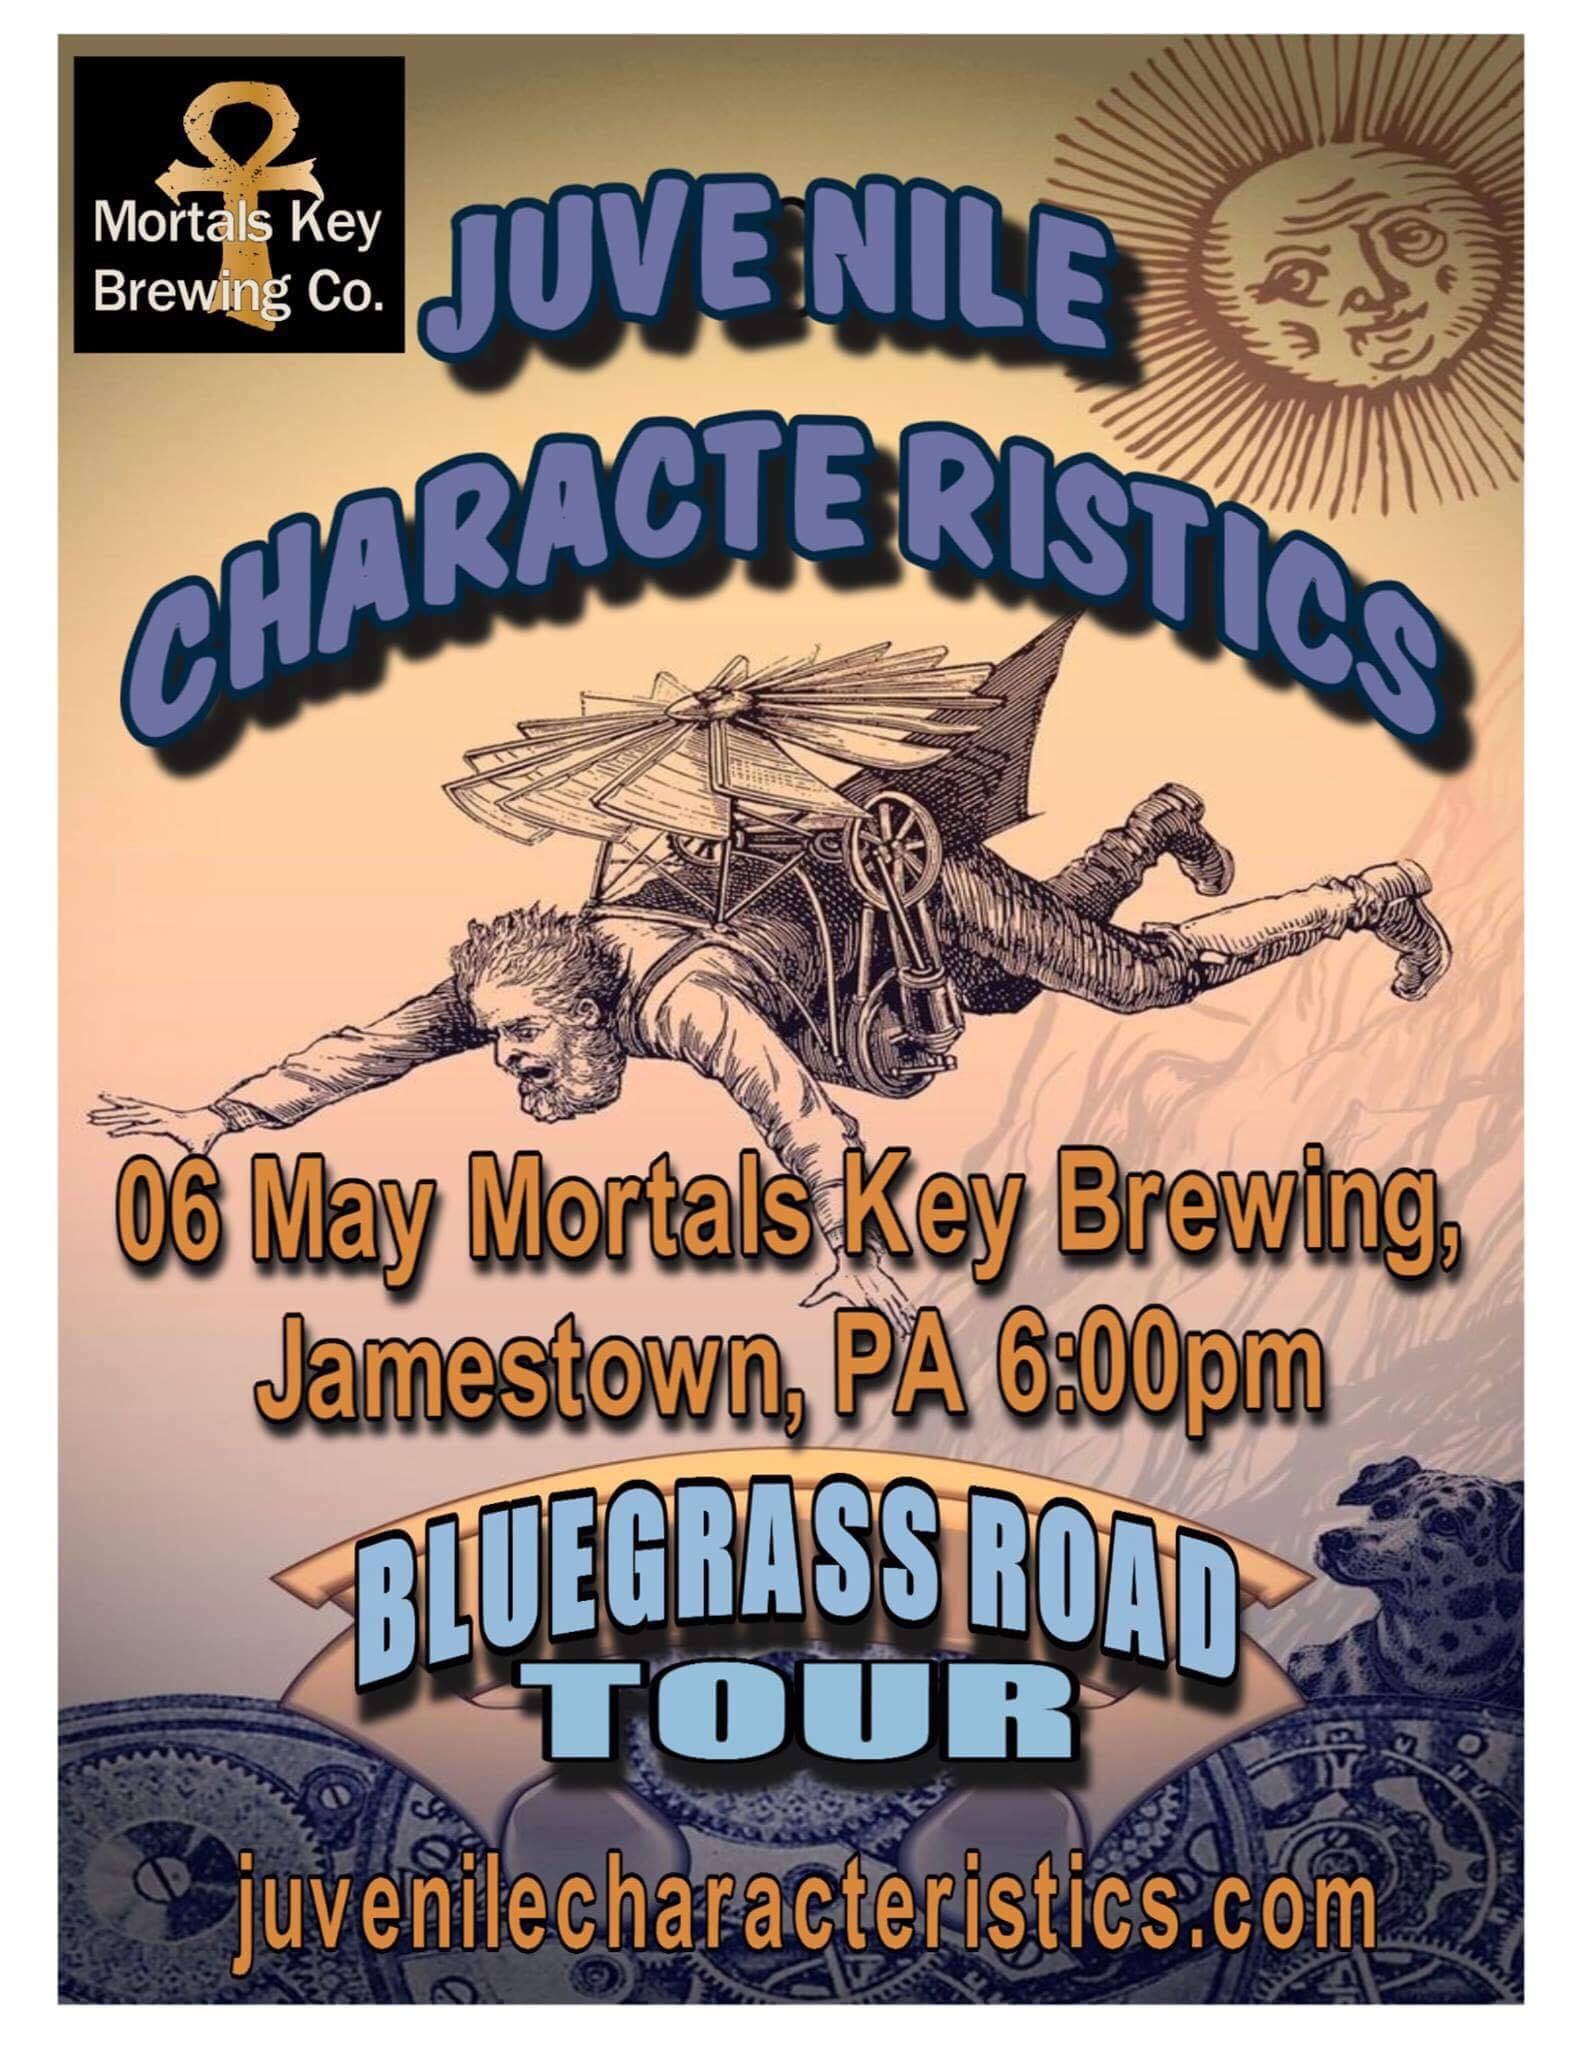 Mortals Key Brewing Company